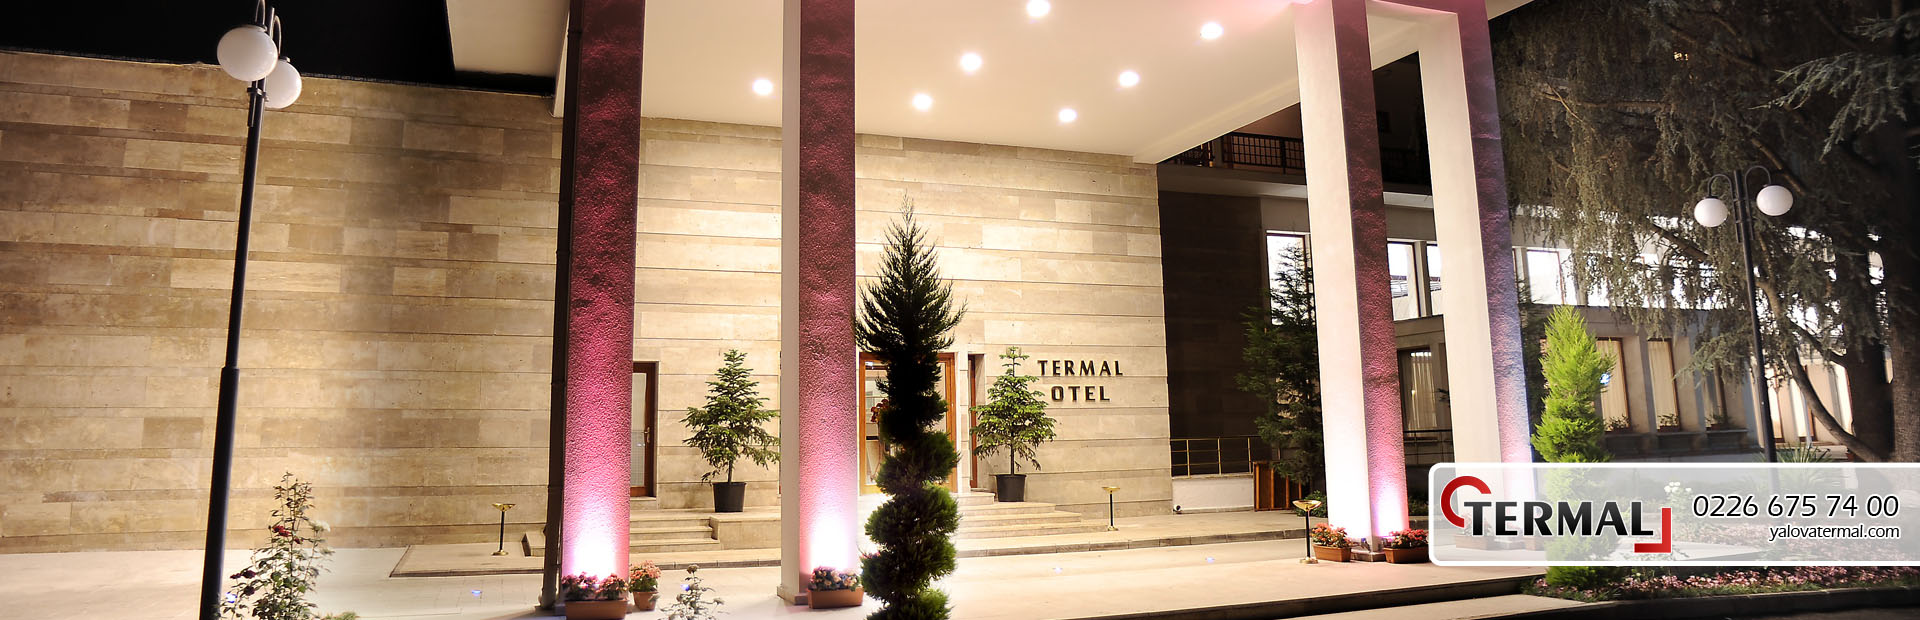 Themal Hotel